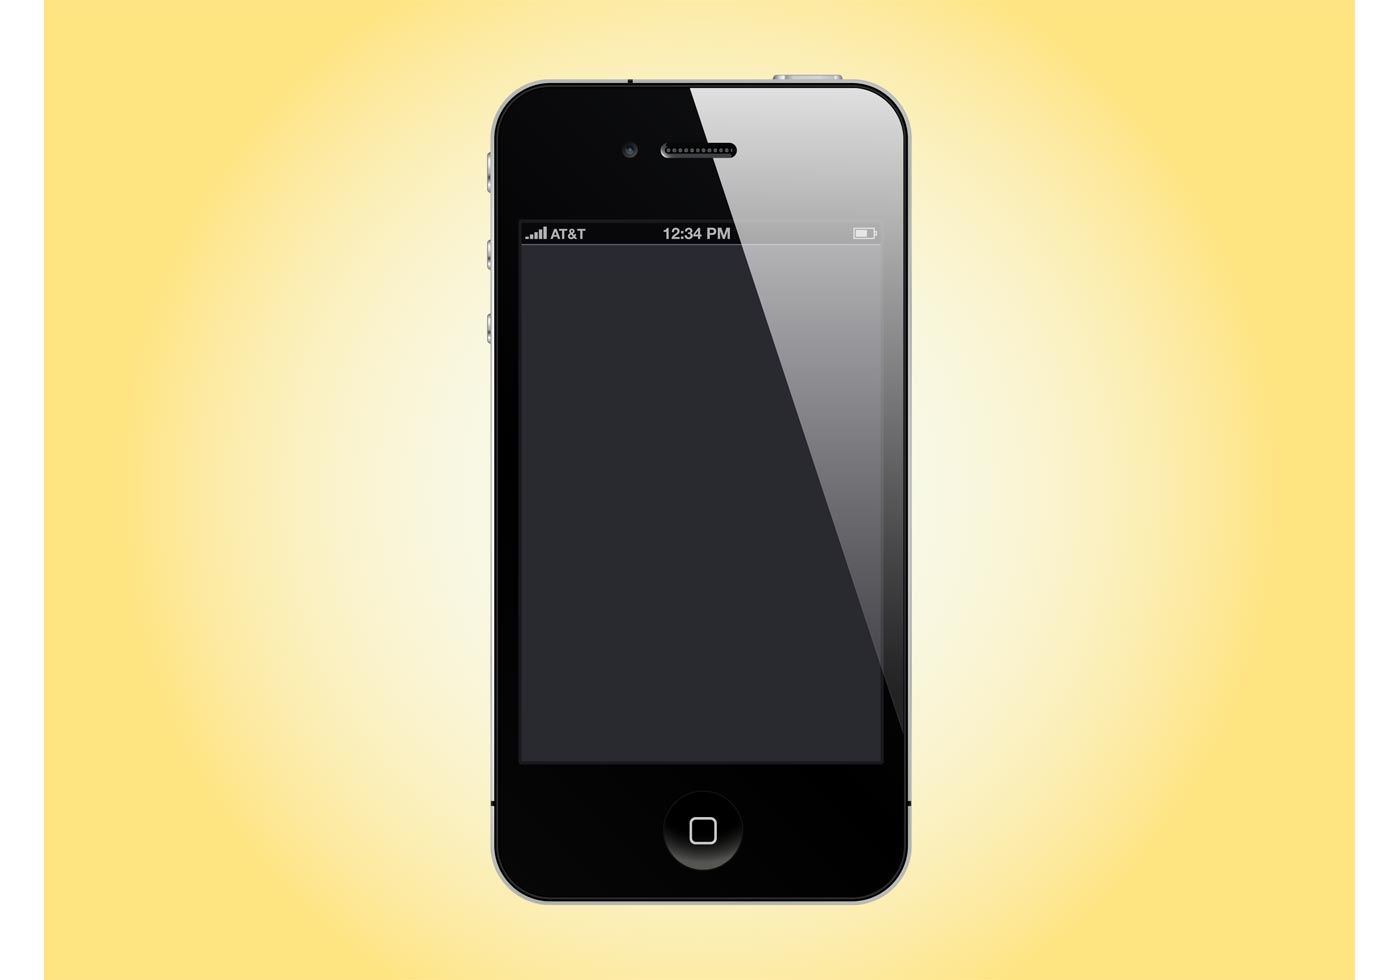 iphone 4 itune free download